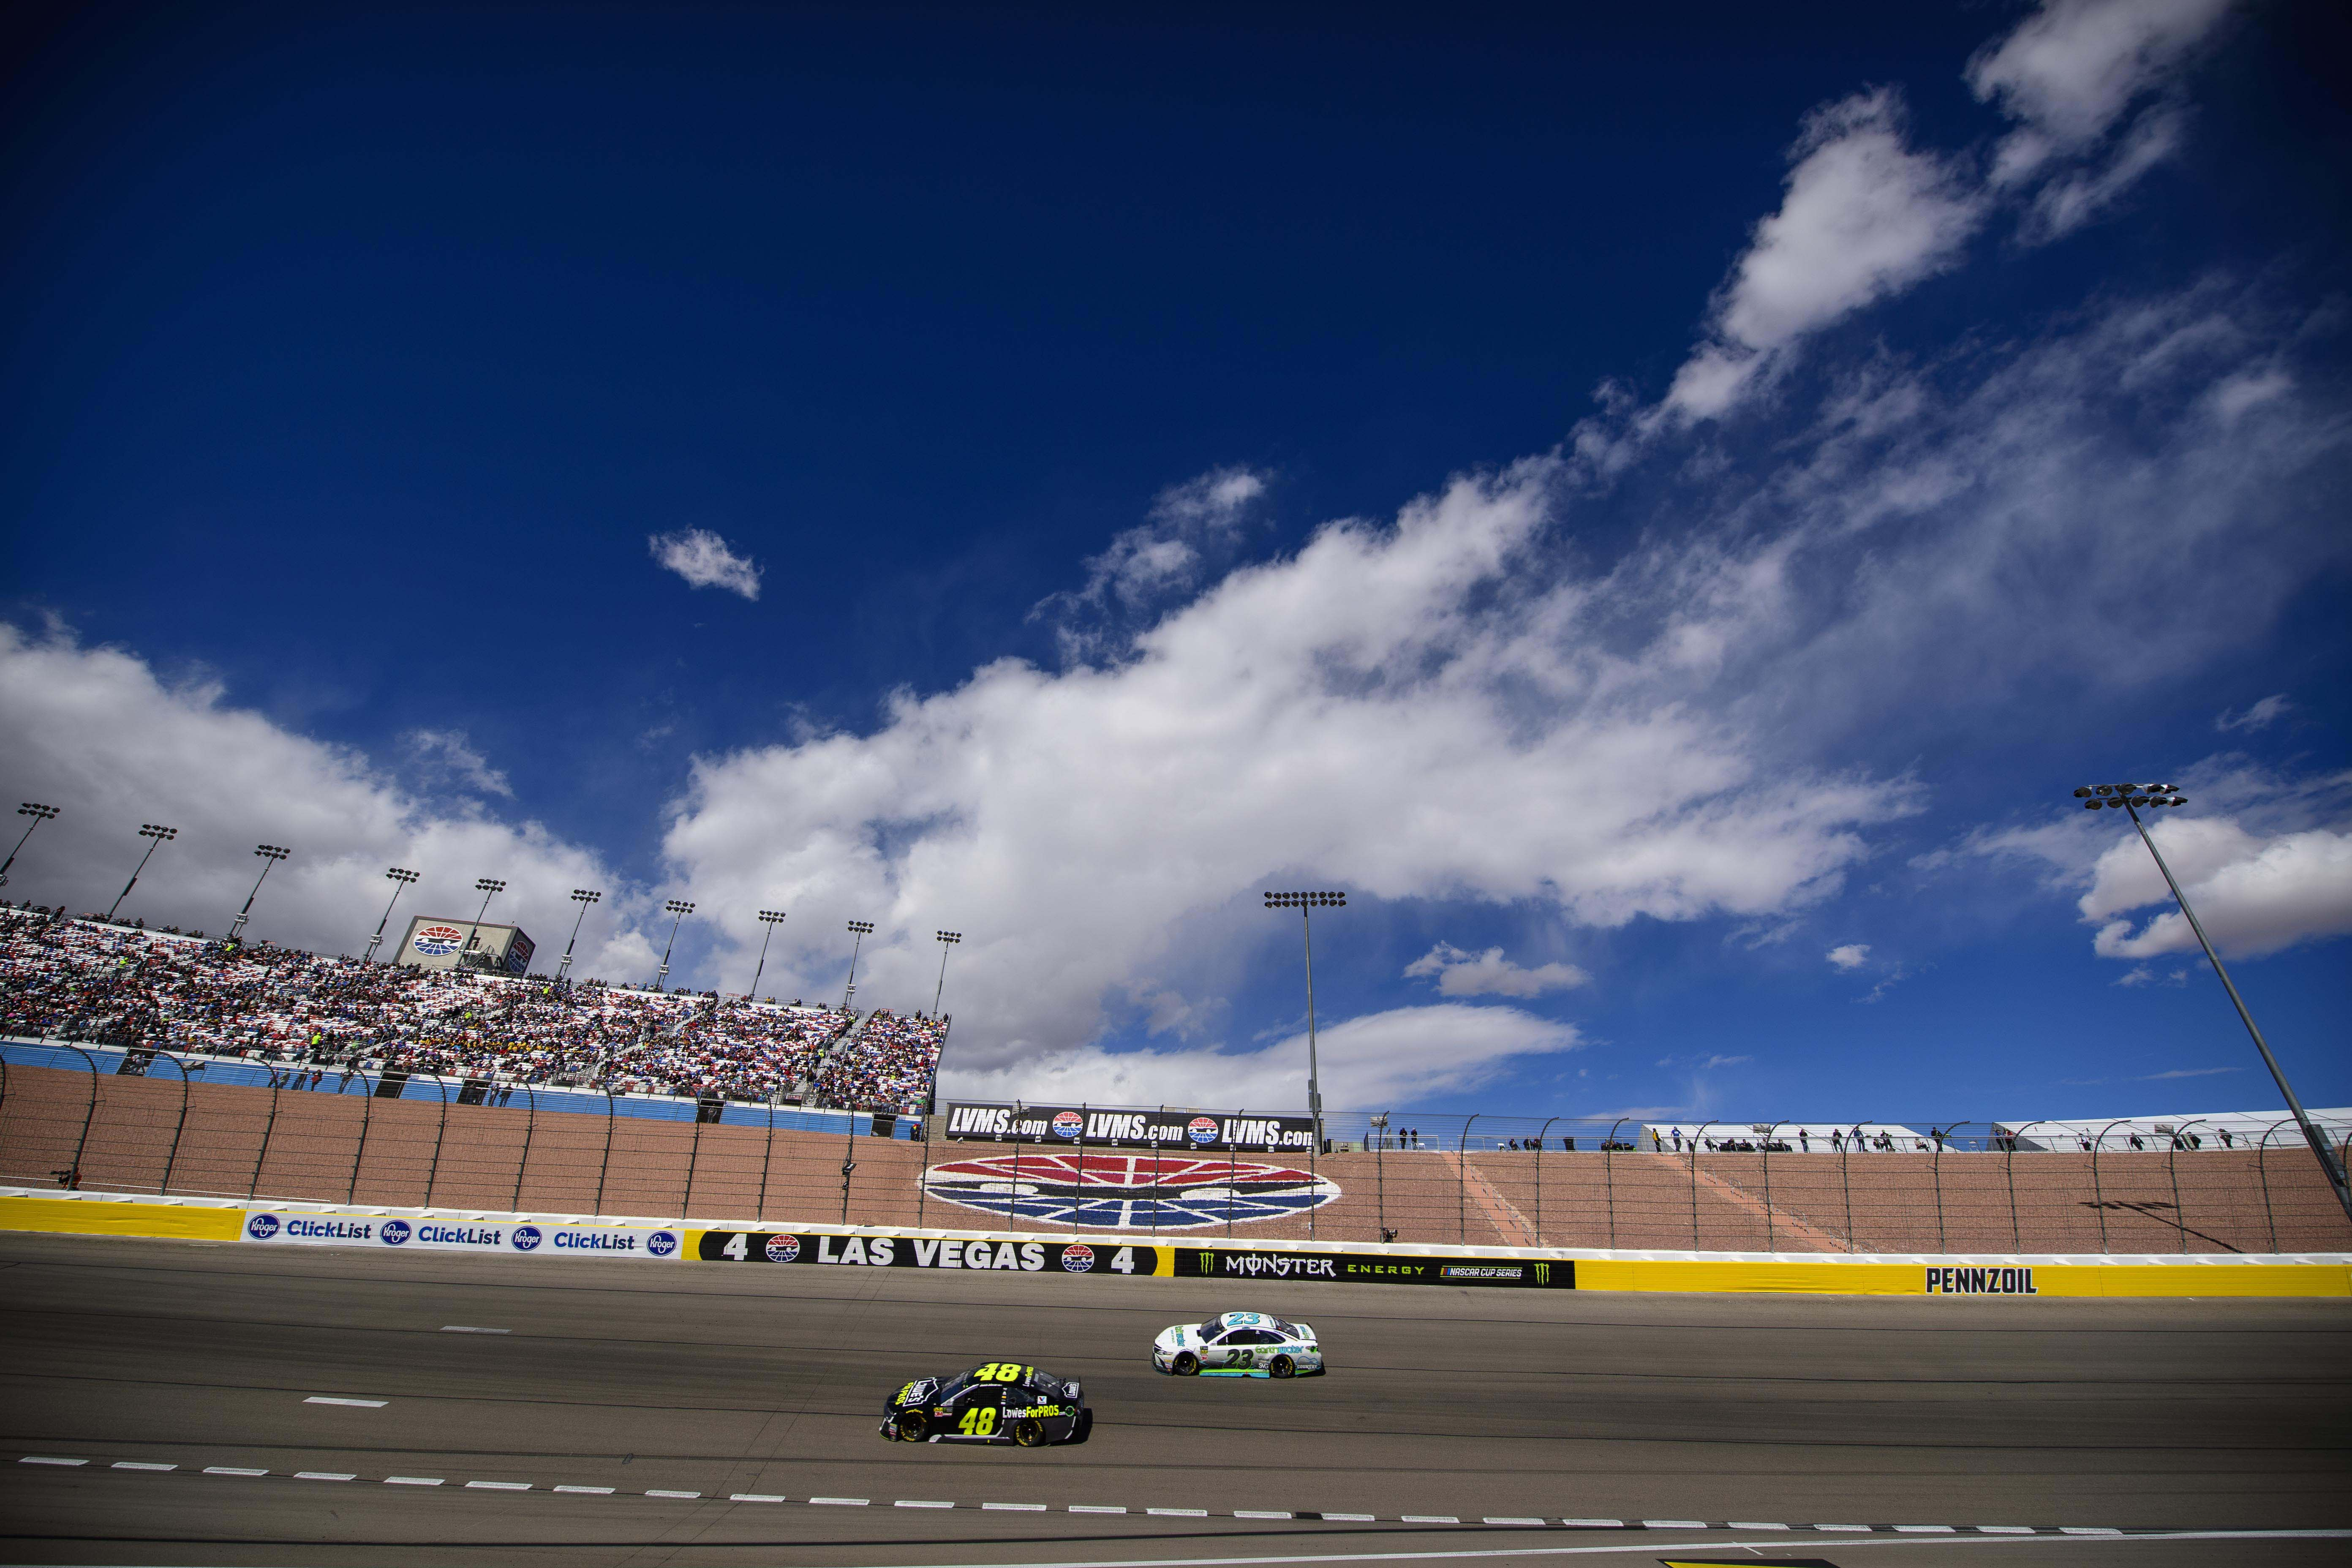 NASCAR: Pennzoil 400 presented by Jiffy Lube